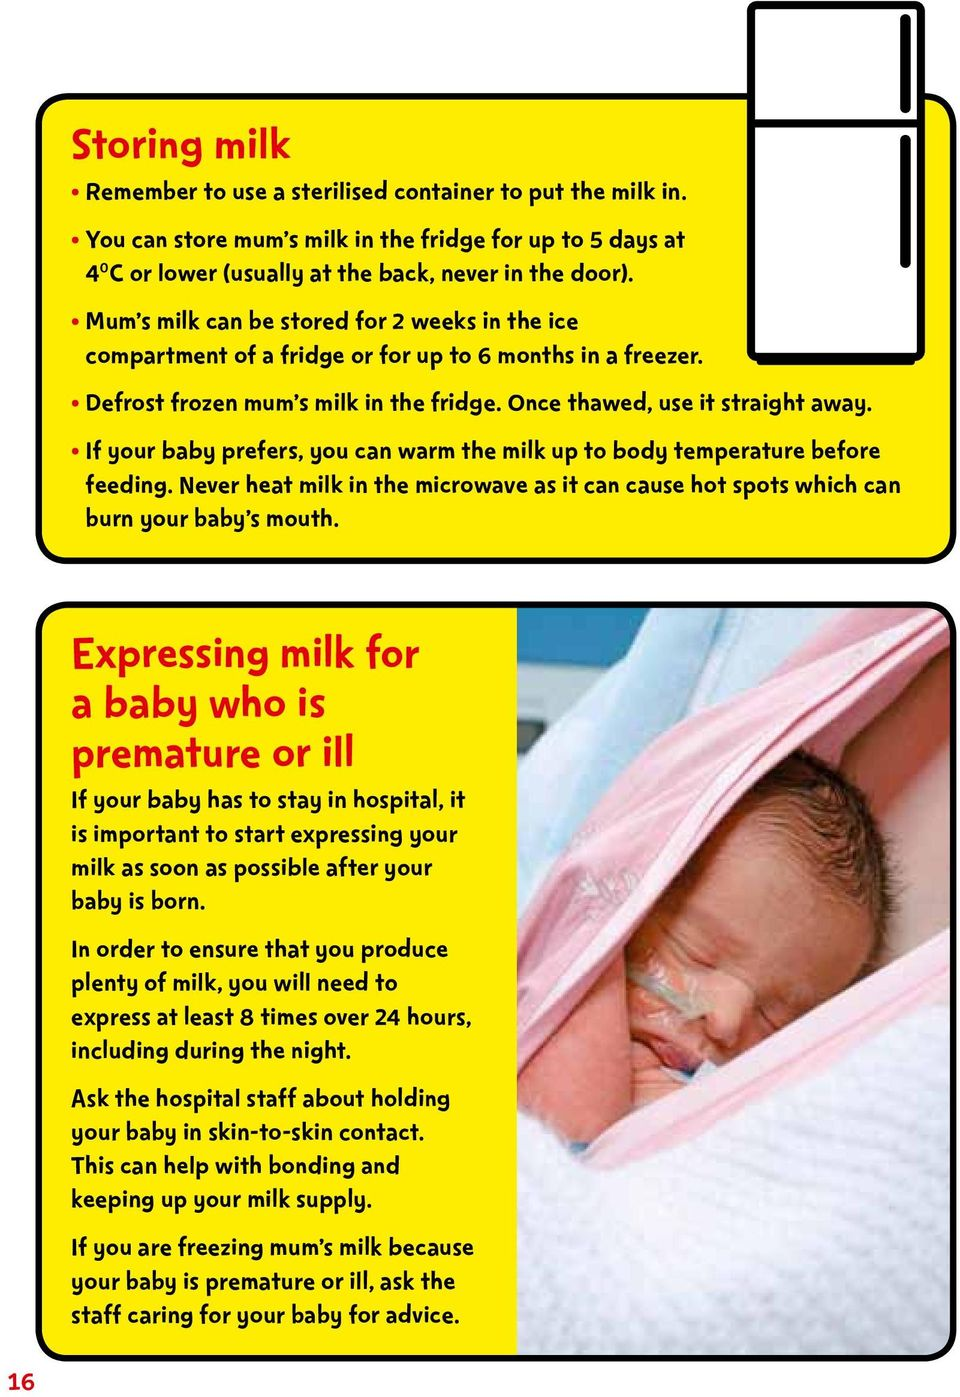 If your baby prefers, you can warm the milk up to body temperature before feeding. Never heat milk in the microwave as it can cause hot spots which can burn your baby s mouth.